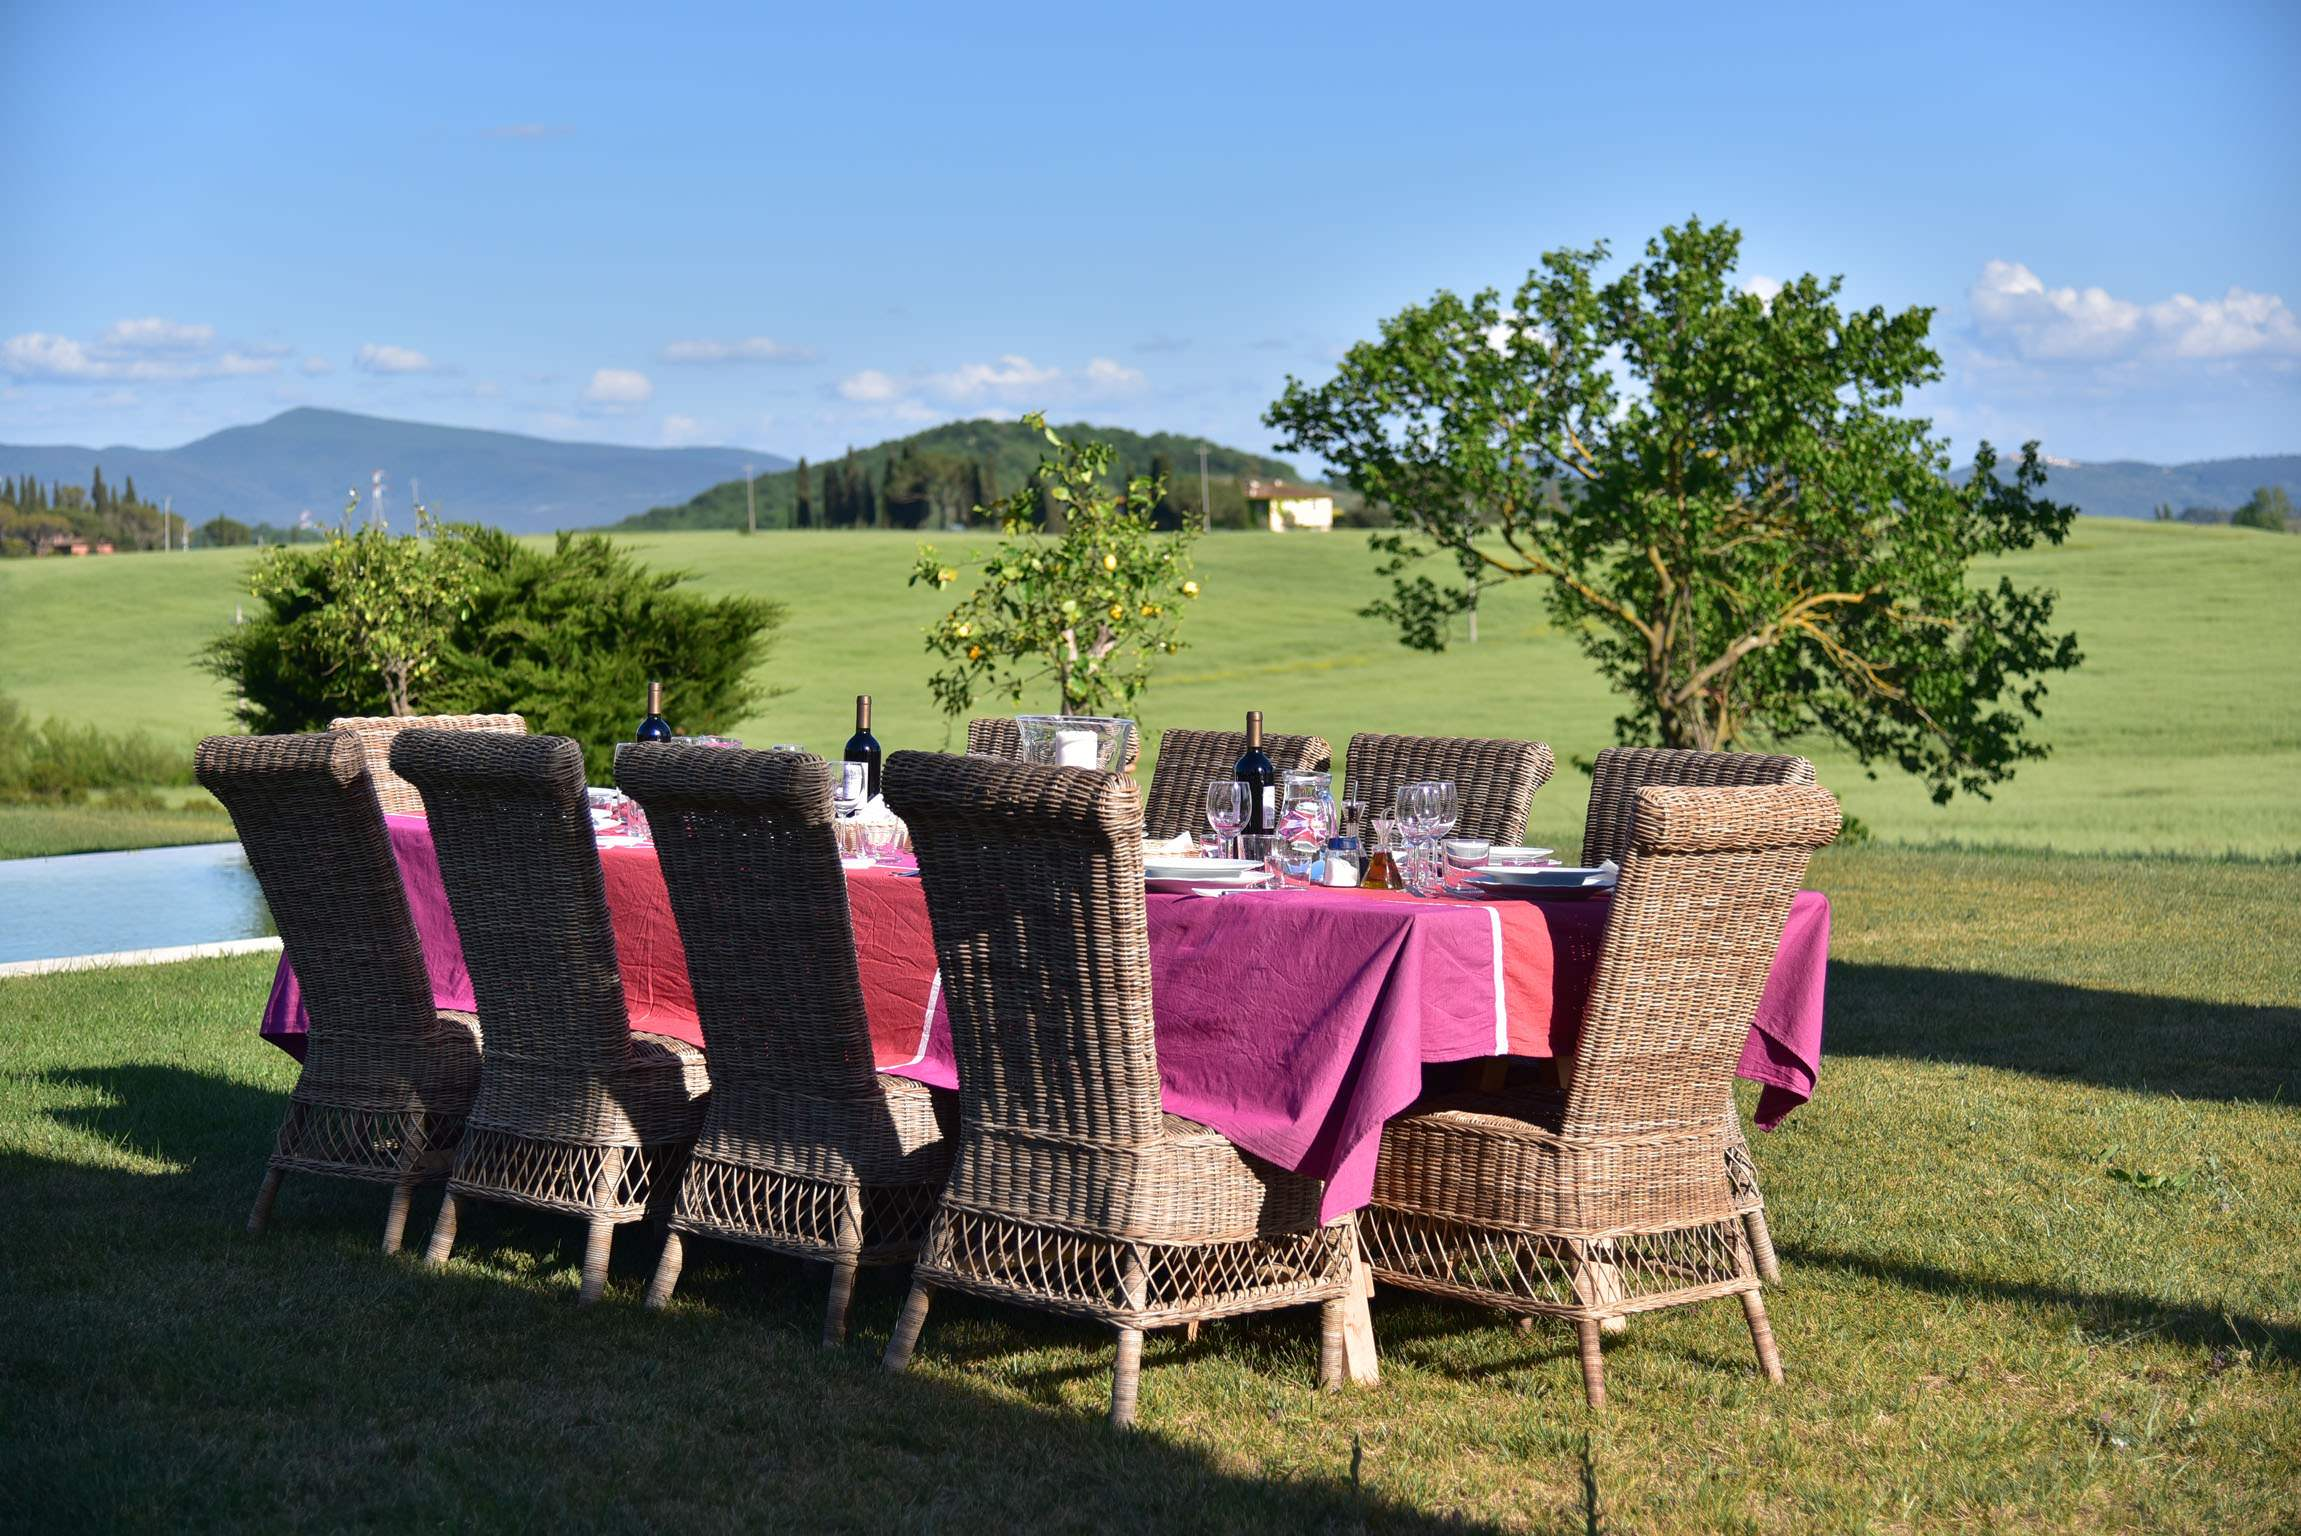 Villa Maremma 2, 9 bedroom villa in South Tuscany - Maremma, Tuscany Photo #4